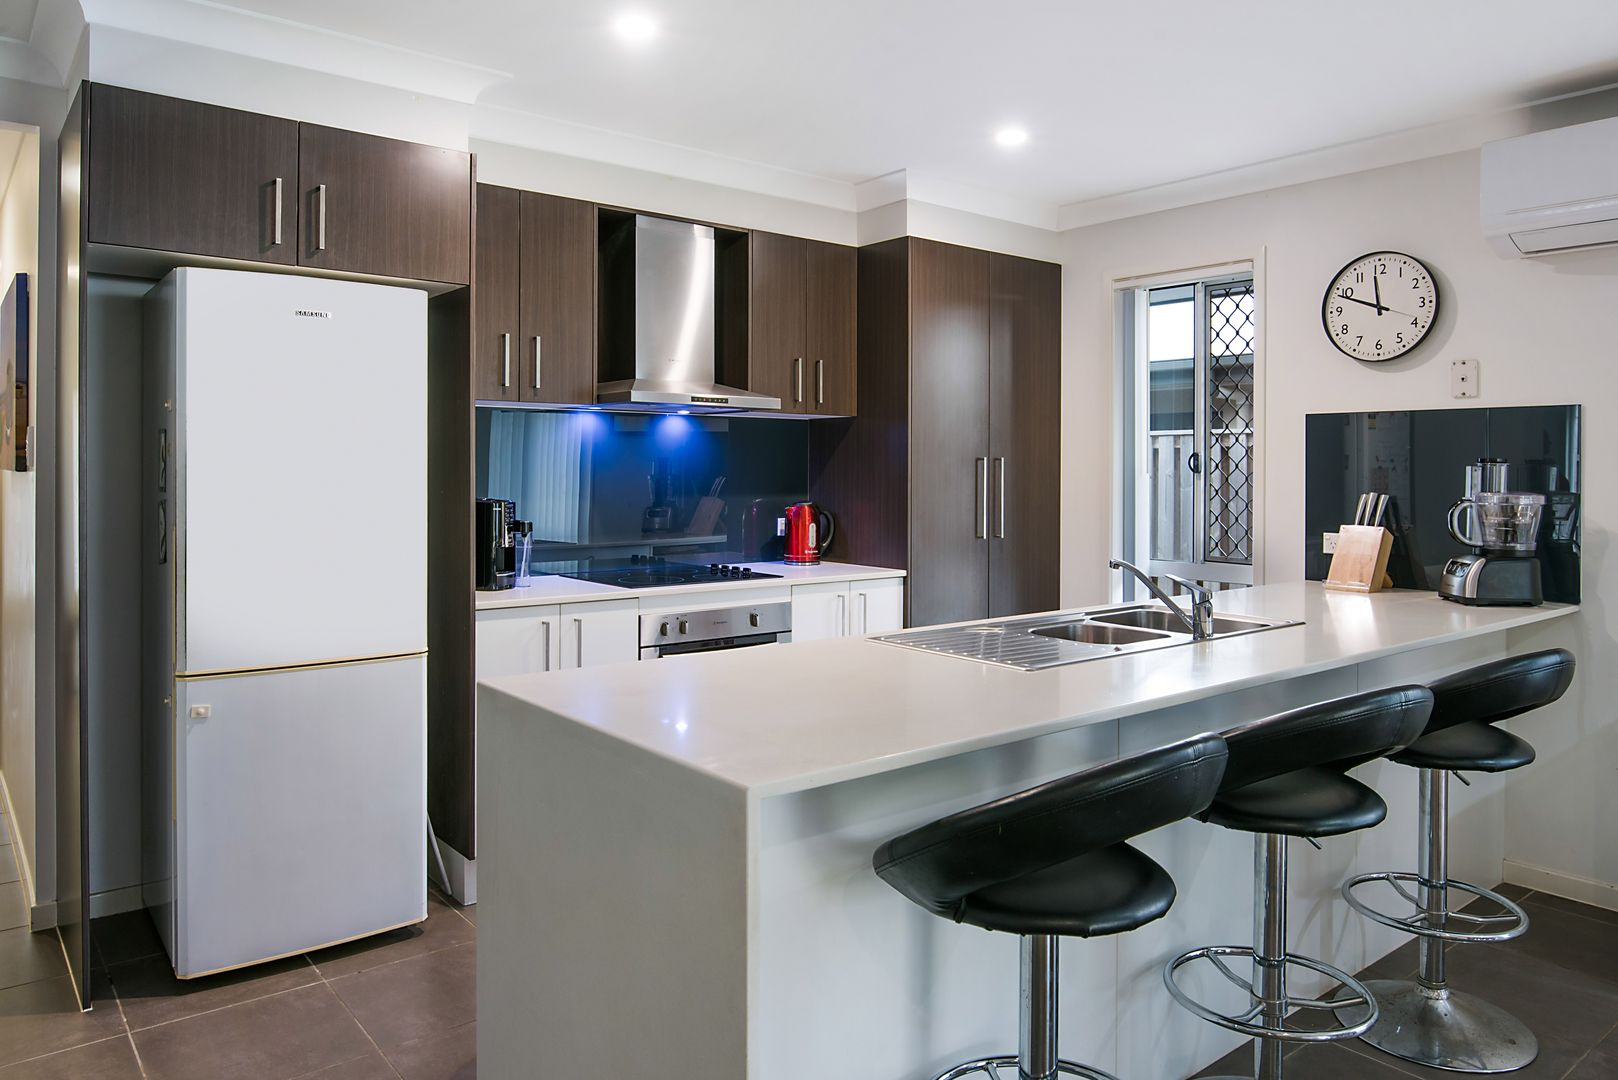 29 Spoonbill Drive, Forest Glen QLD 4556, Image 1